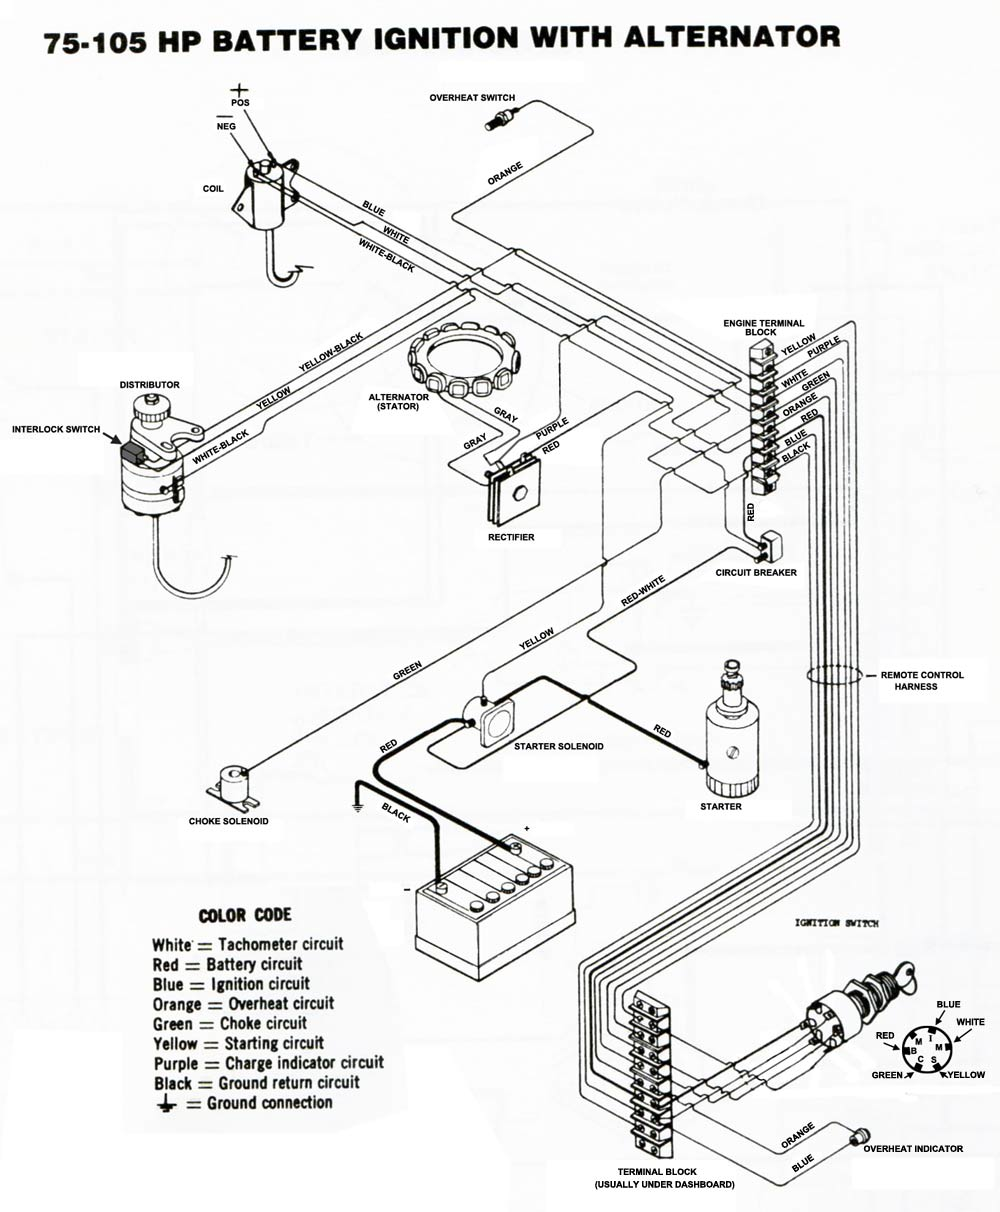 Schematic Sea Ray Boat Wiring Diagram from maxrules.com